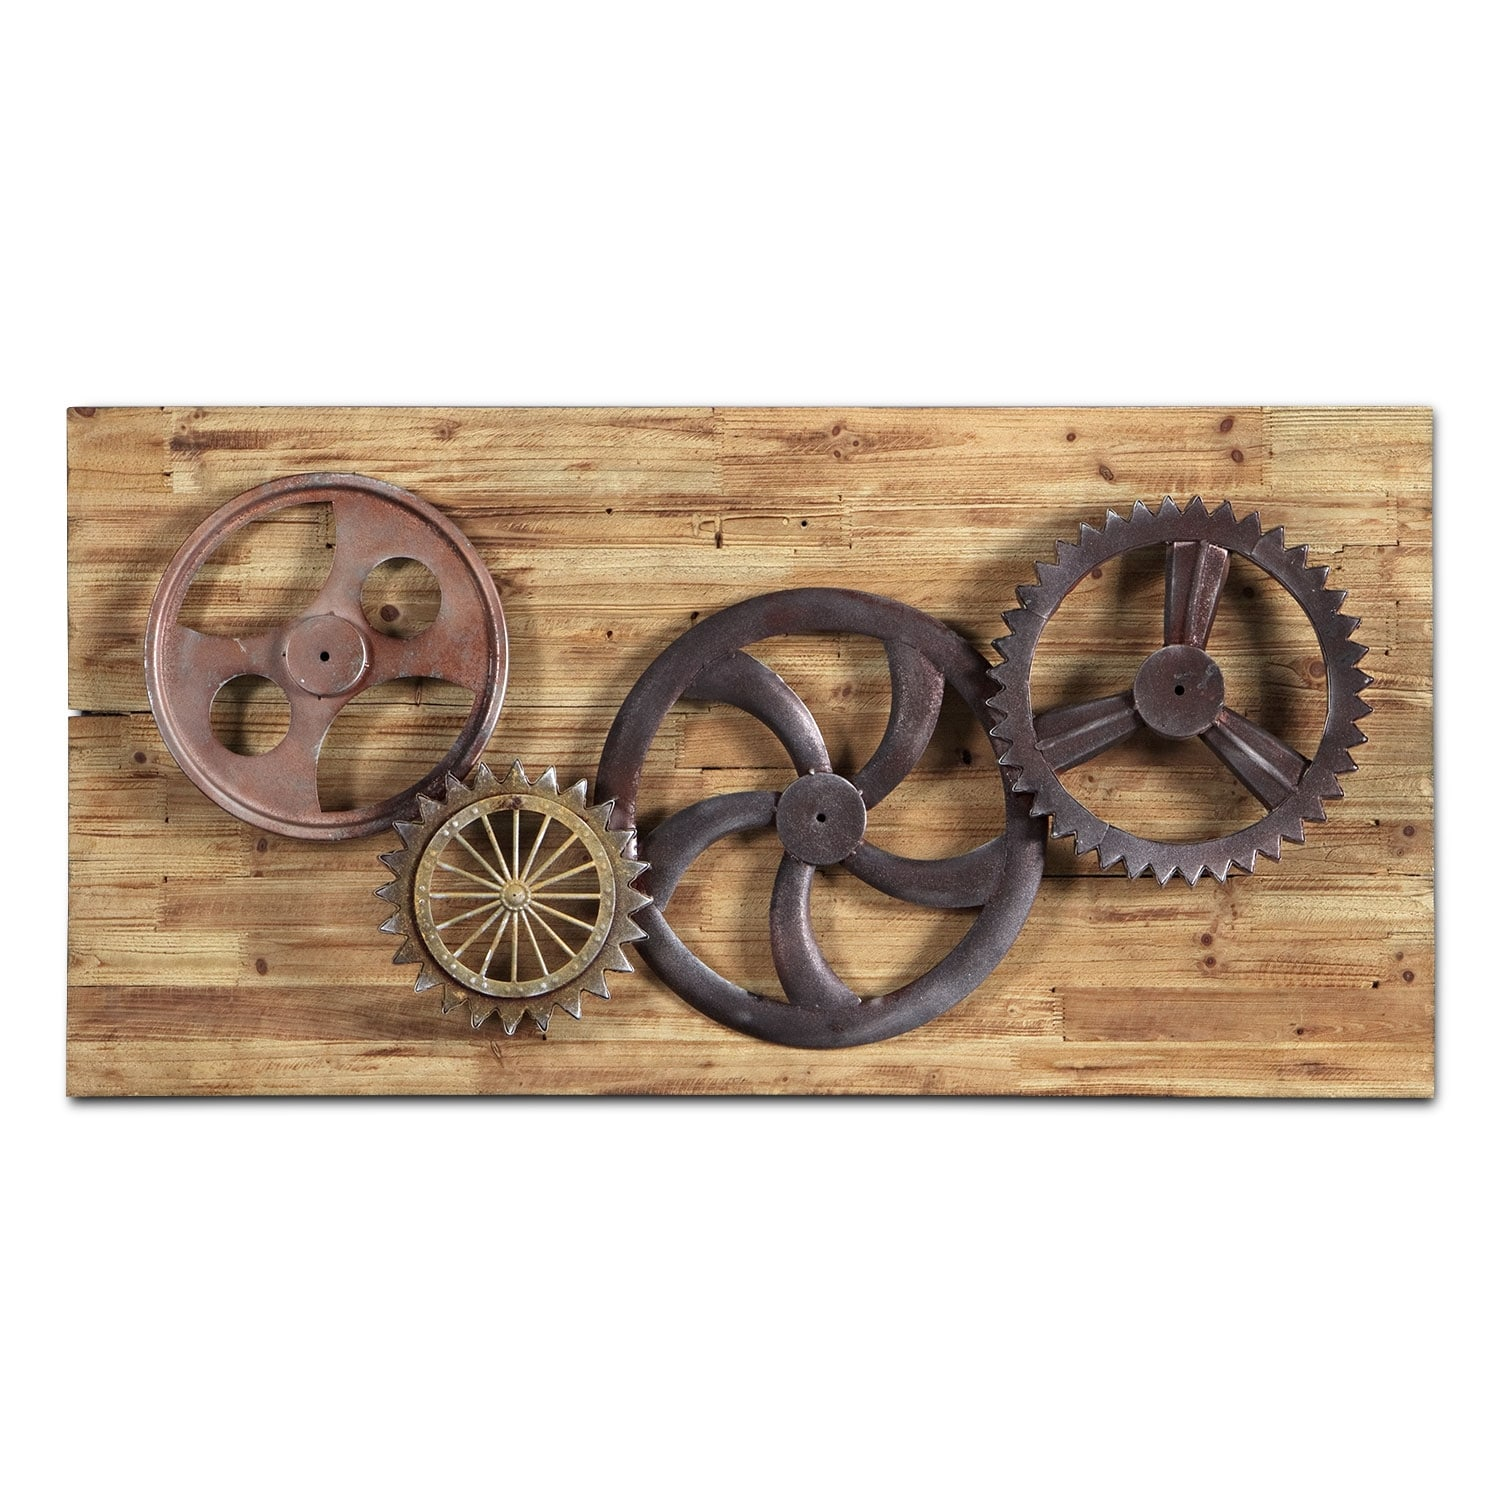 Wall Decor Gears : Industrial gears wall d?cor value city furniture